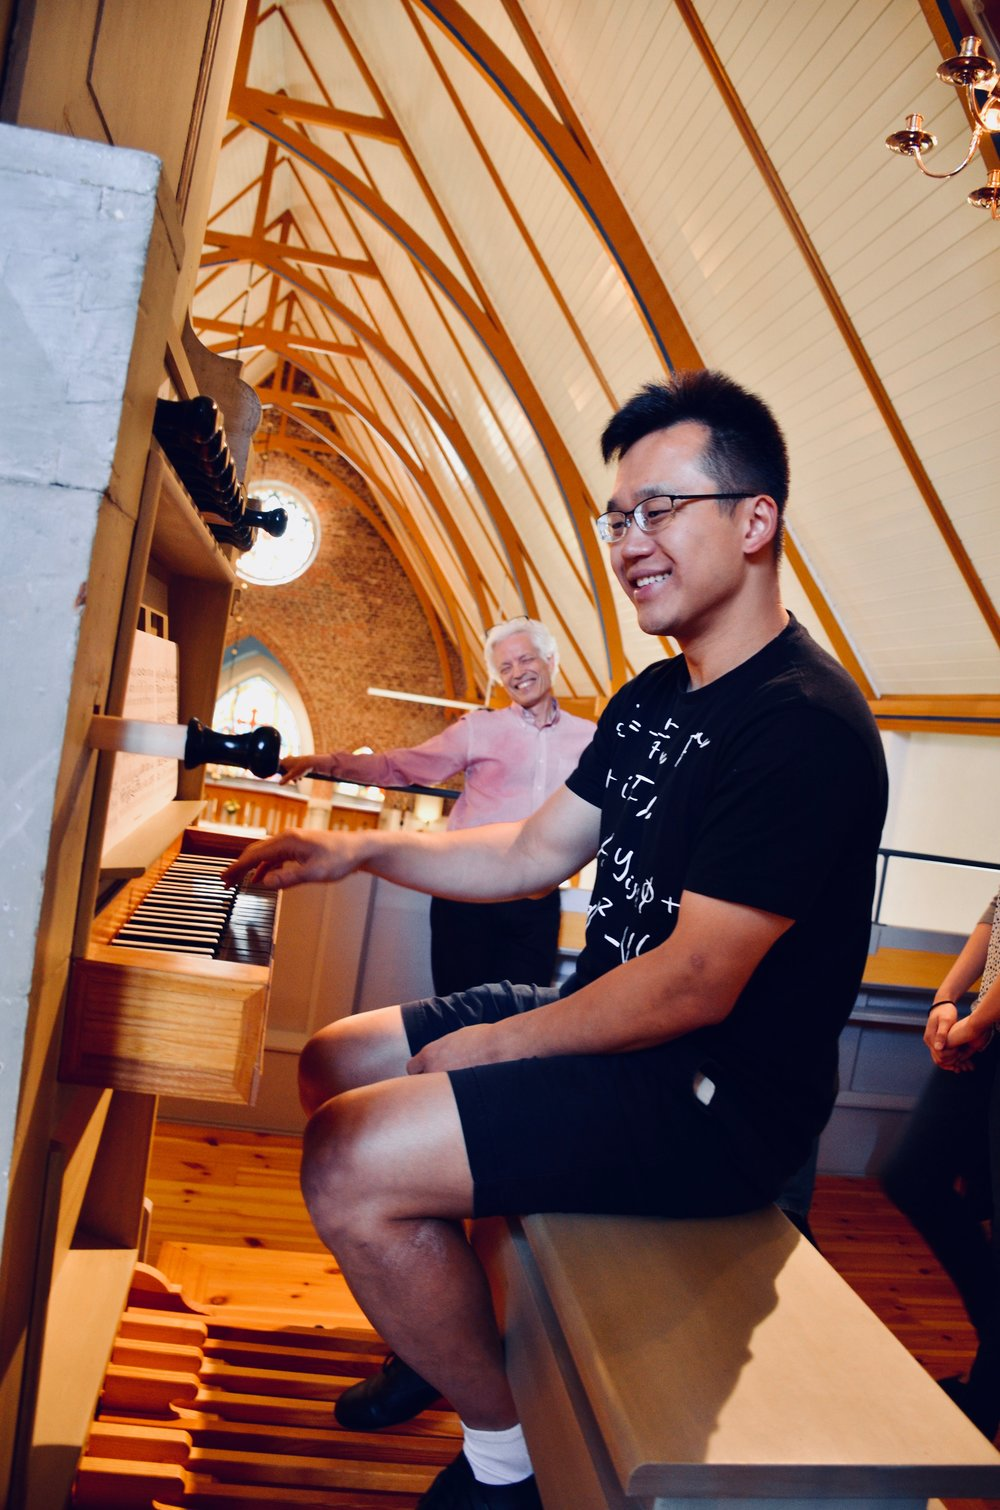 Hans Davidsson coaches Adrian Cho on the 1783 Schiörlin organ in Jonsered, Sweden.